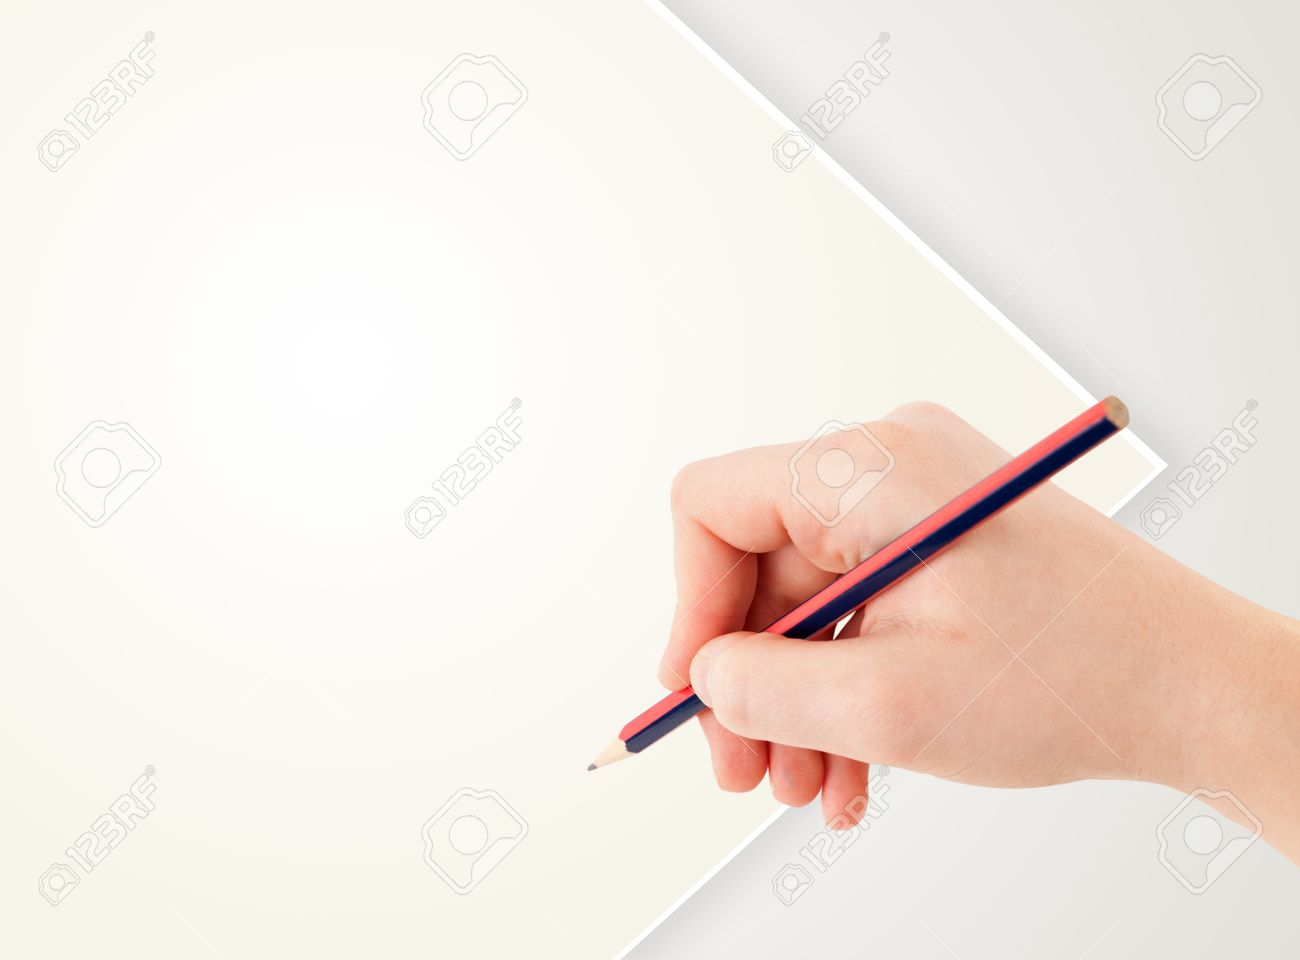 Human Hand Drawing With Pencil On Empty White Paper Template Stock ...